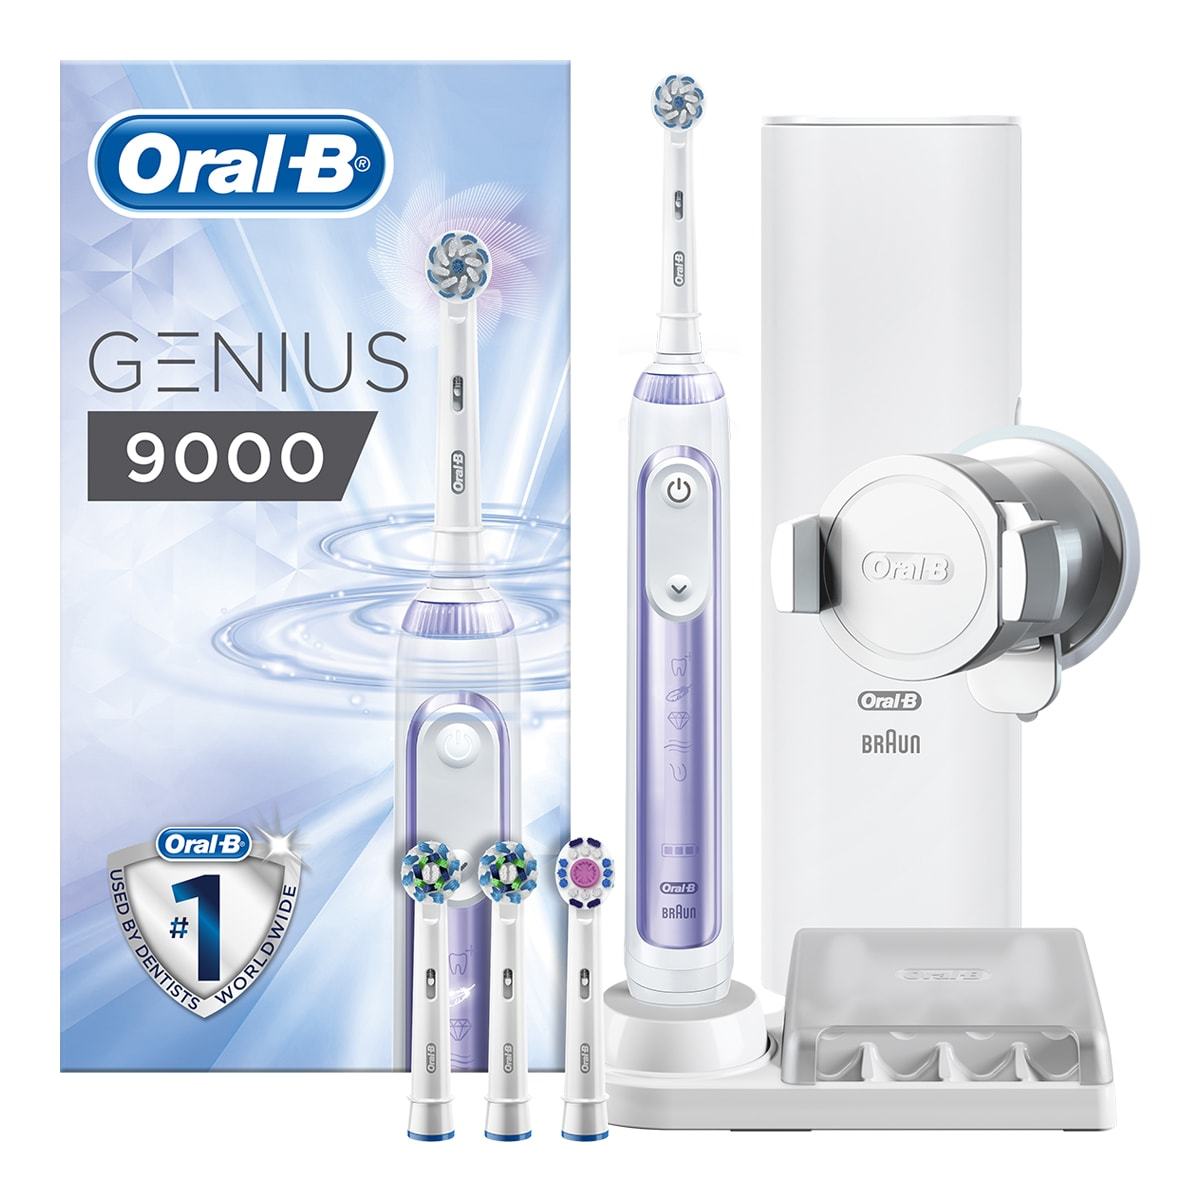 Oral-B Genius 9000 Orchid Purple Electric Toothbrush | Oral-B